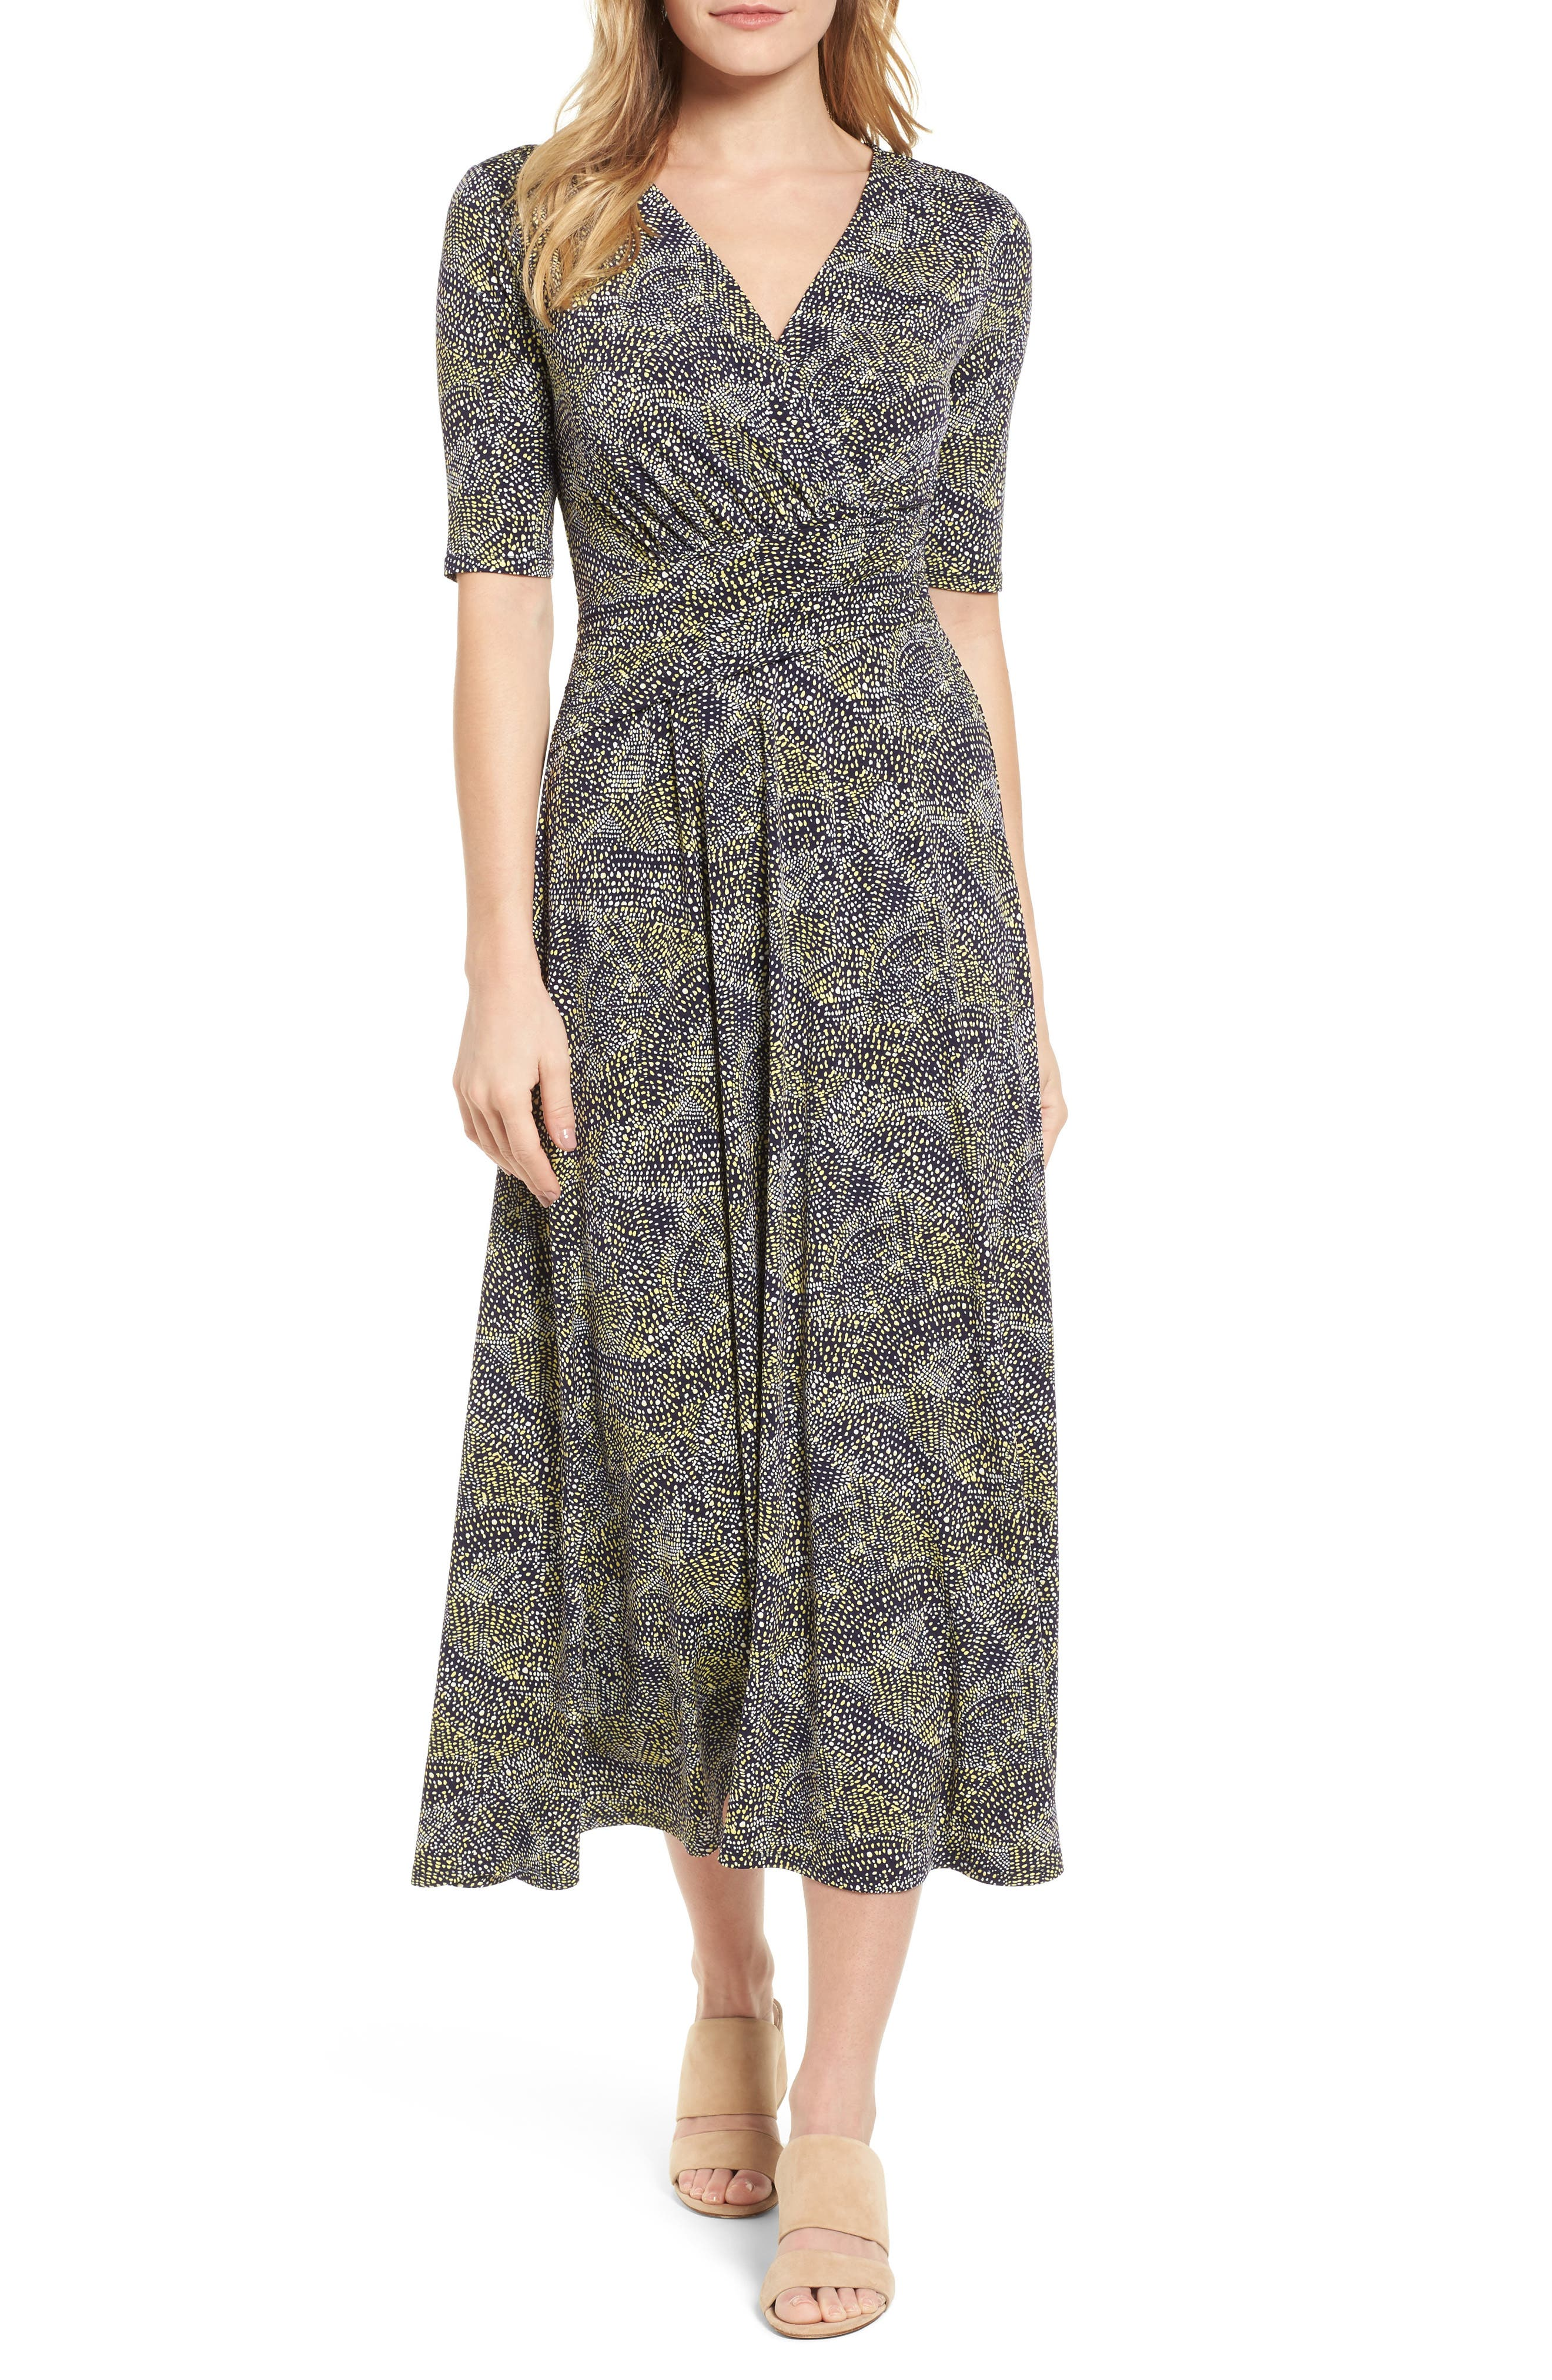 Ruched Speckle Midi Dress,                         Main,                         color, 784-Vivid Canary